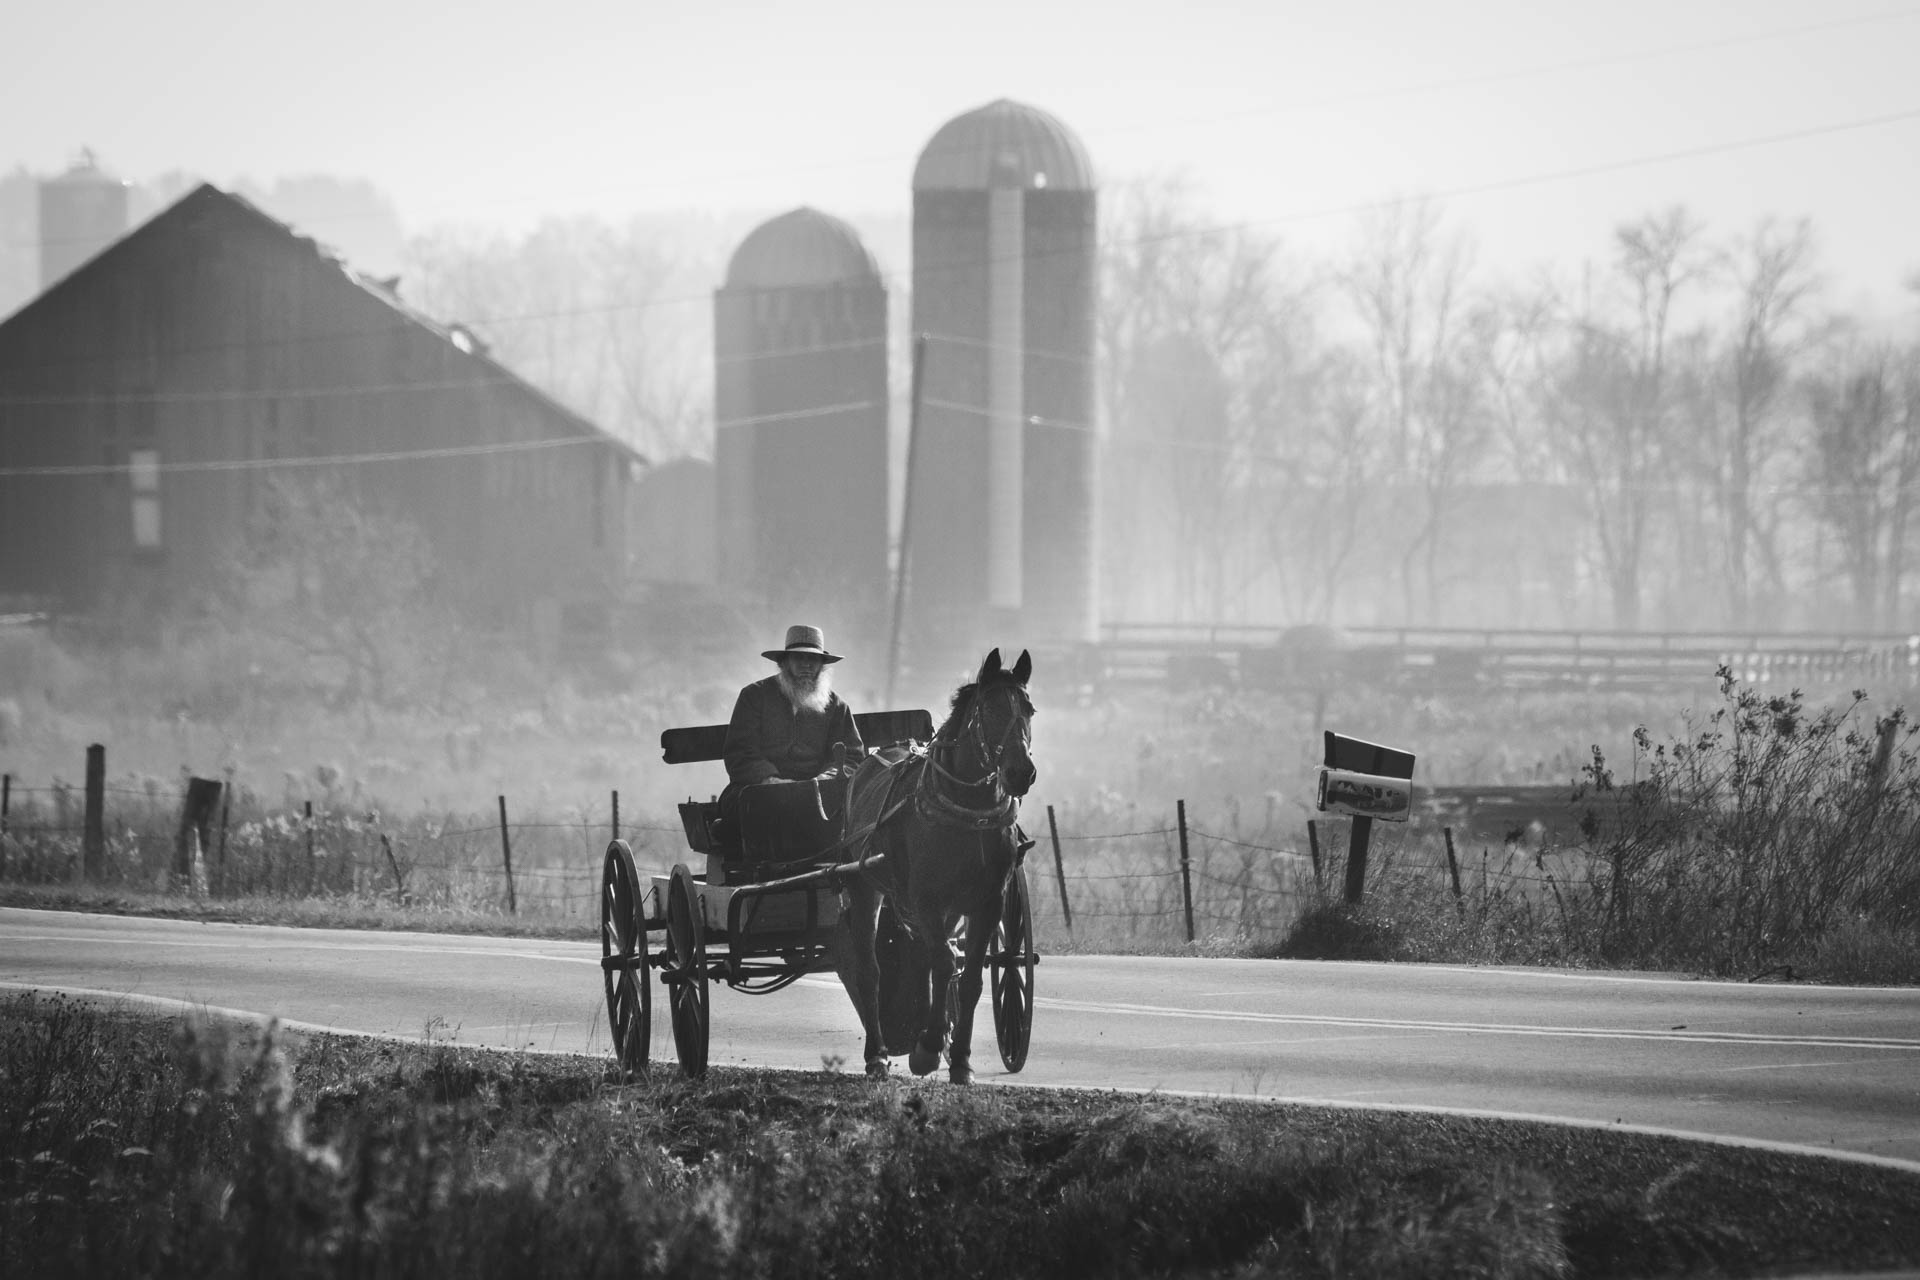 amish-man-grey-beard-horse-and-wagon-down-country-road-barn-6945